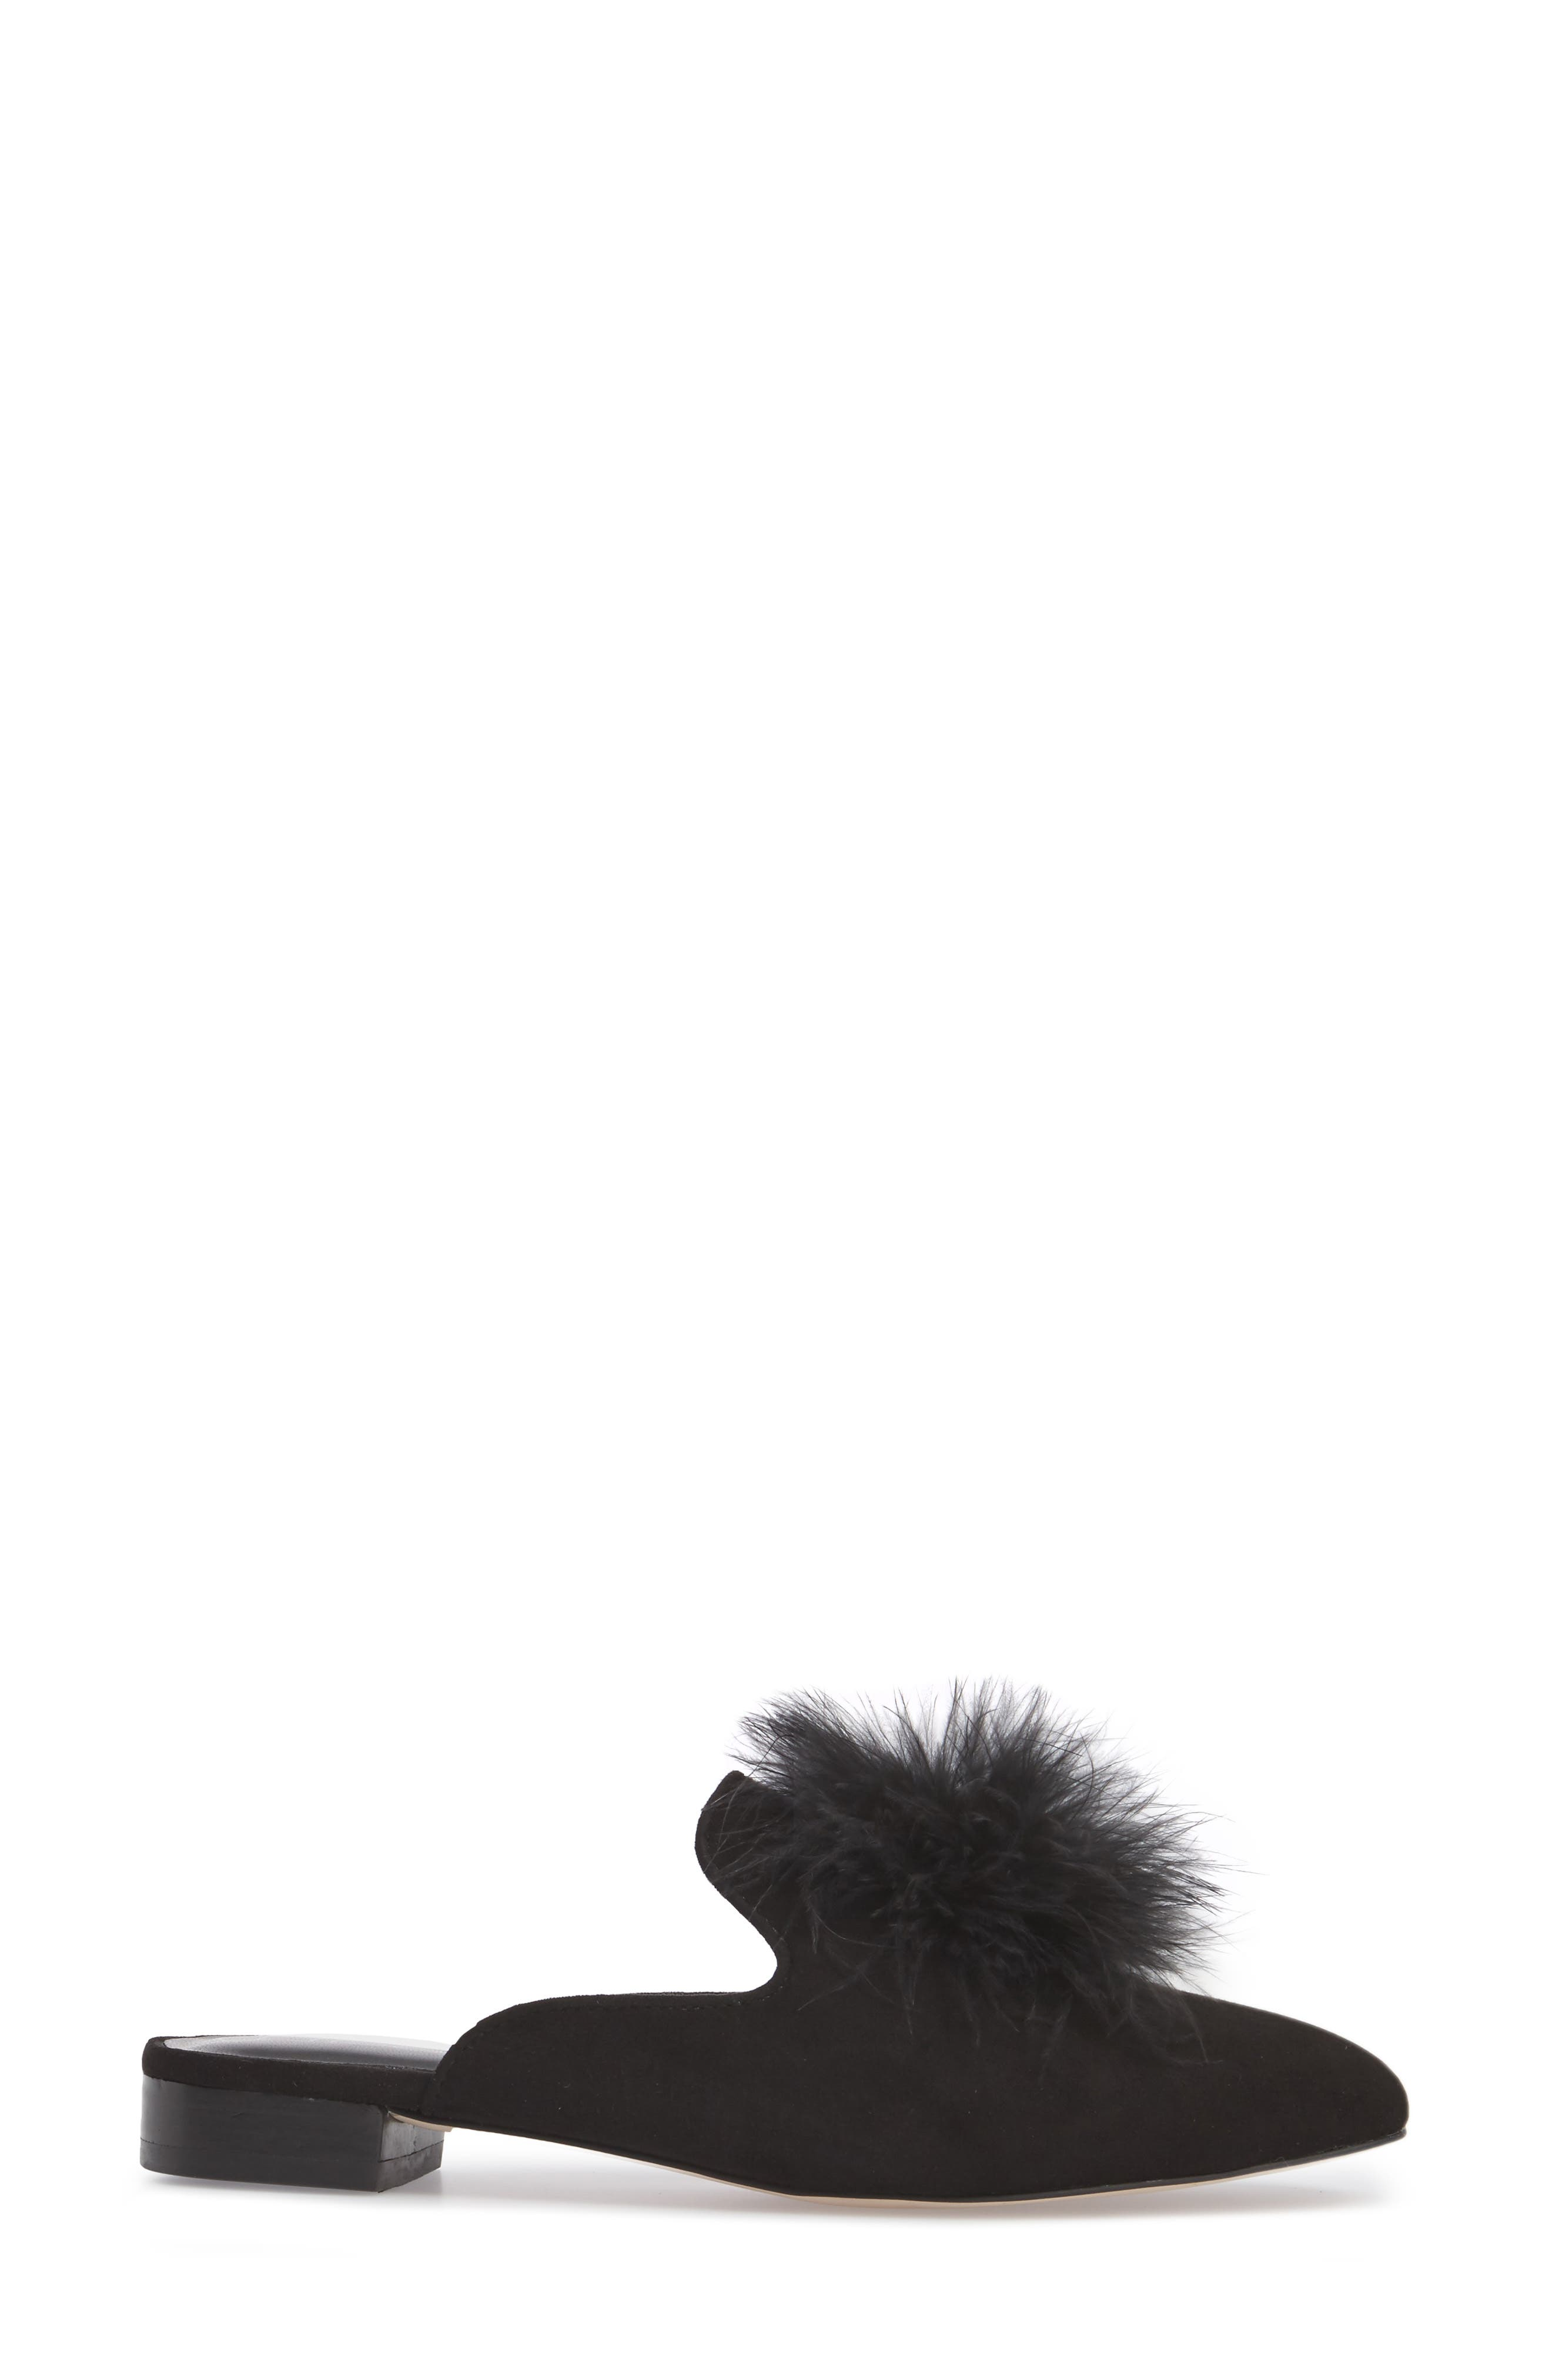 Cleona Feather Pompom Mule,                             Alternate thumbnail 3, color,                             001